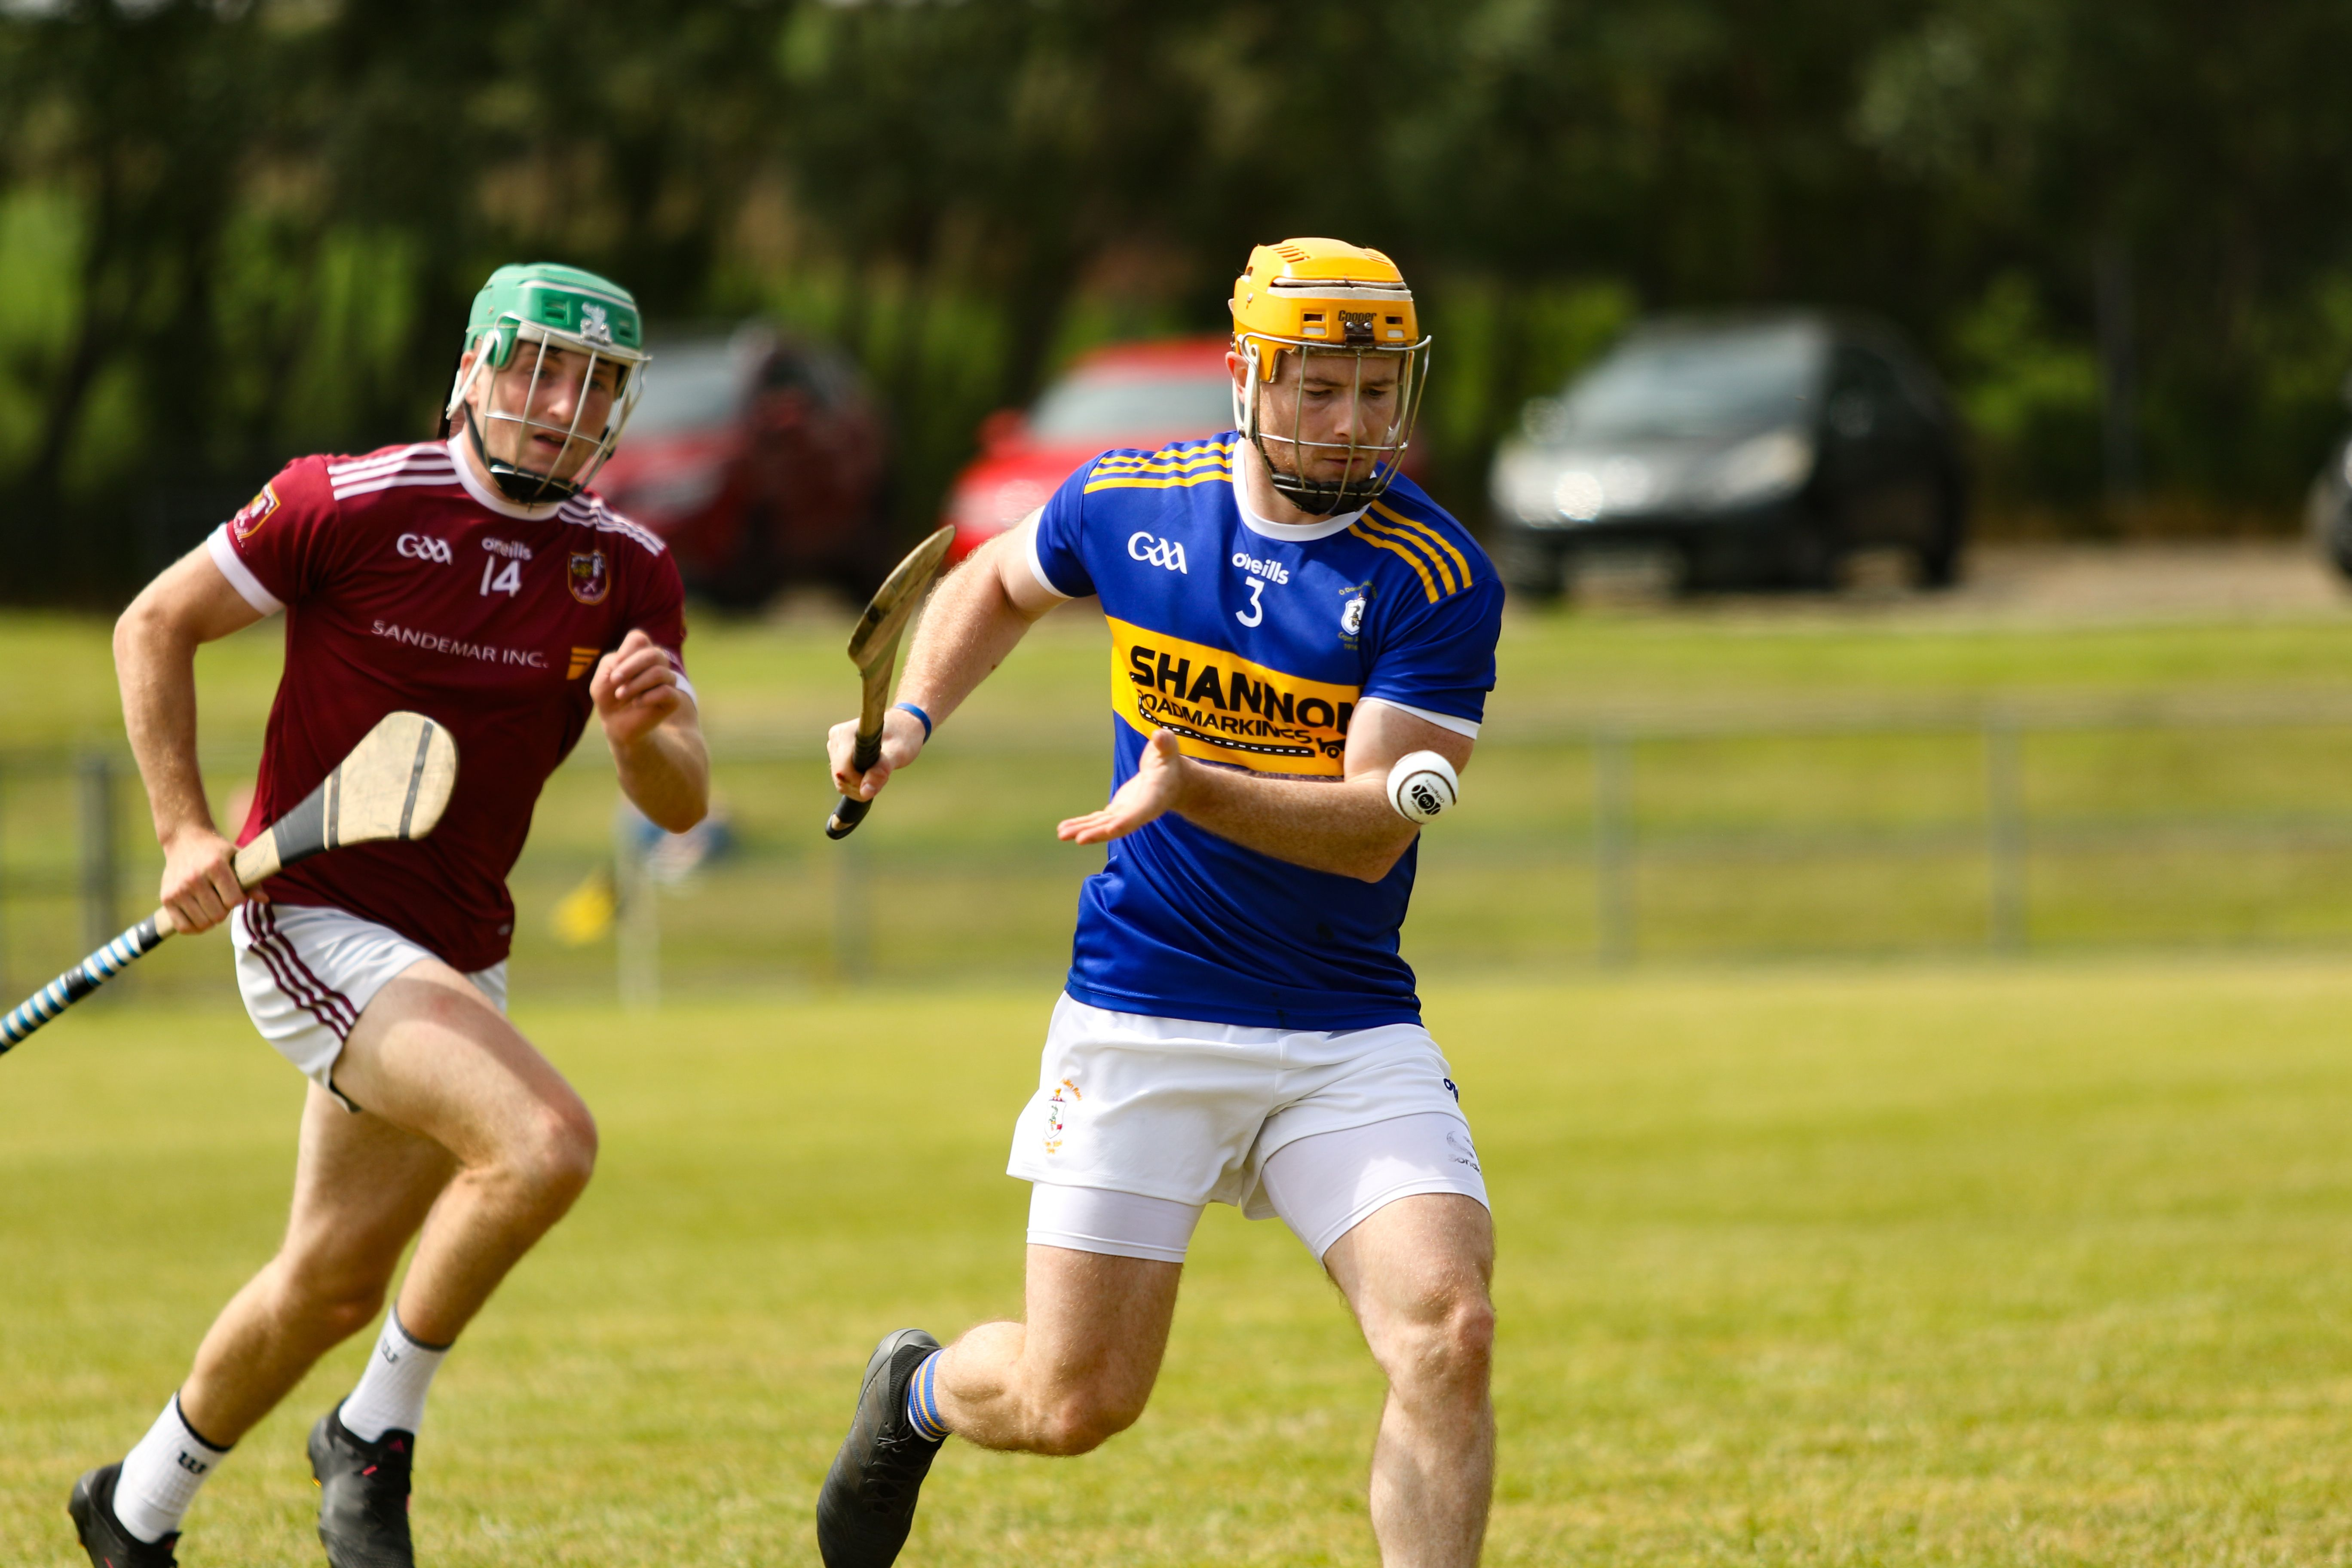 Ciaran Orchin clears under pressure from Niall McCormick